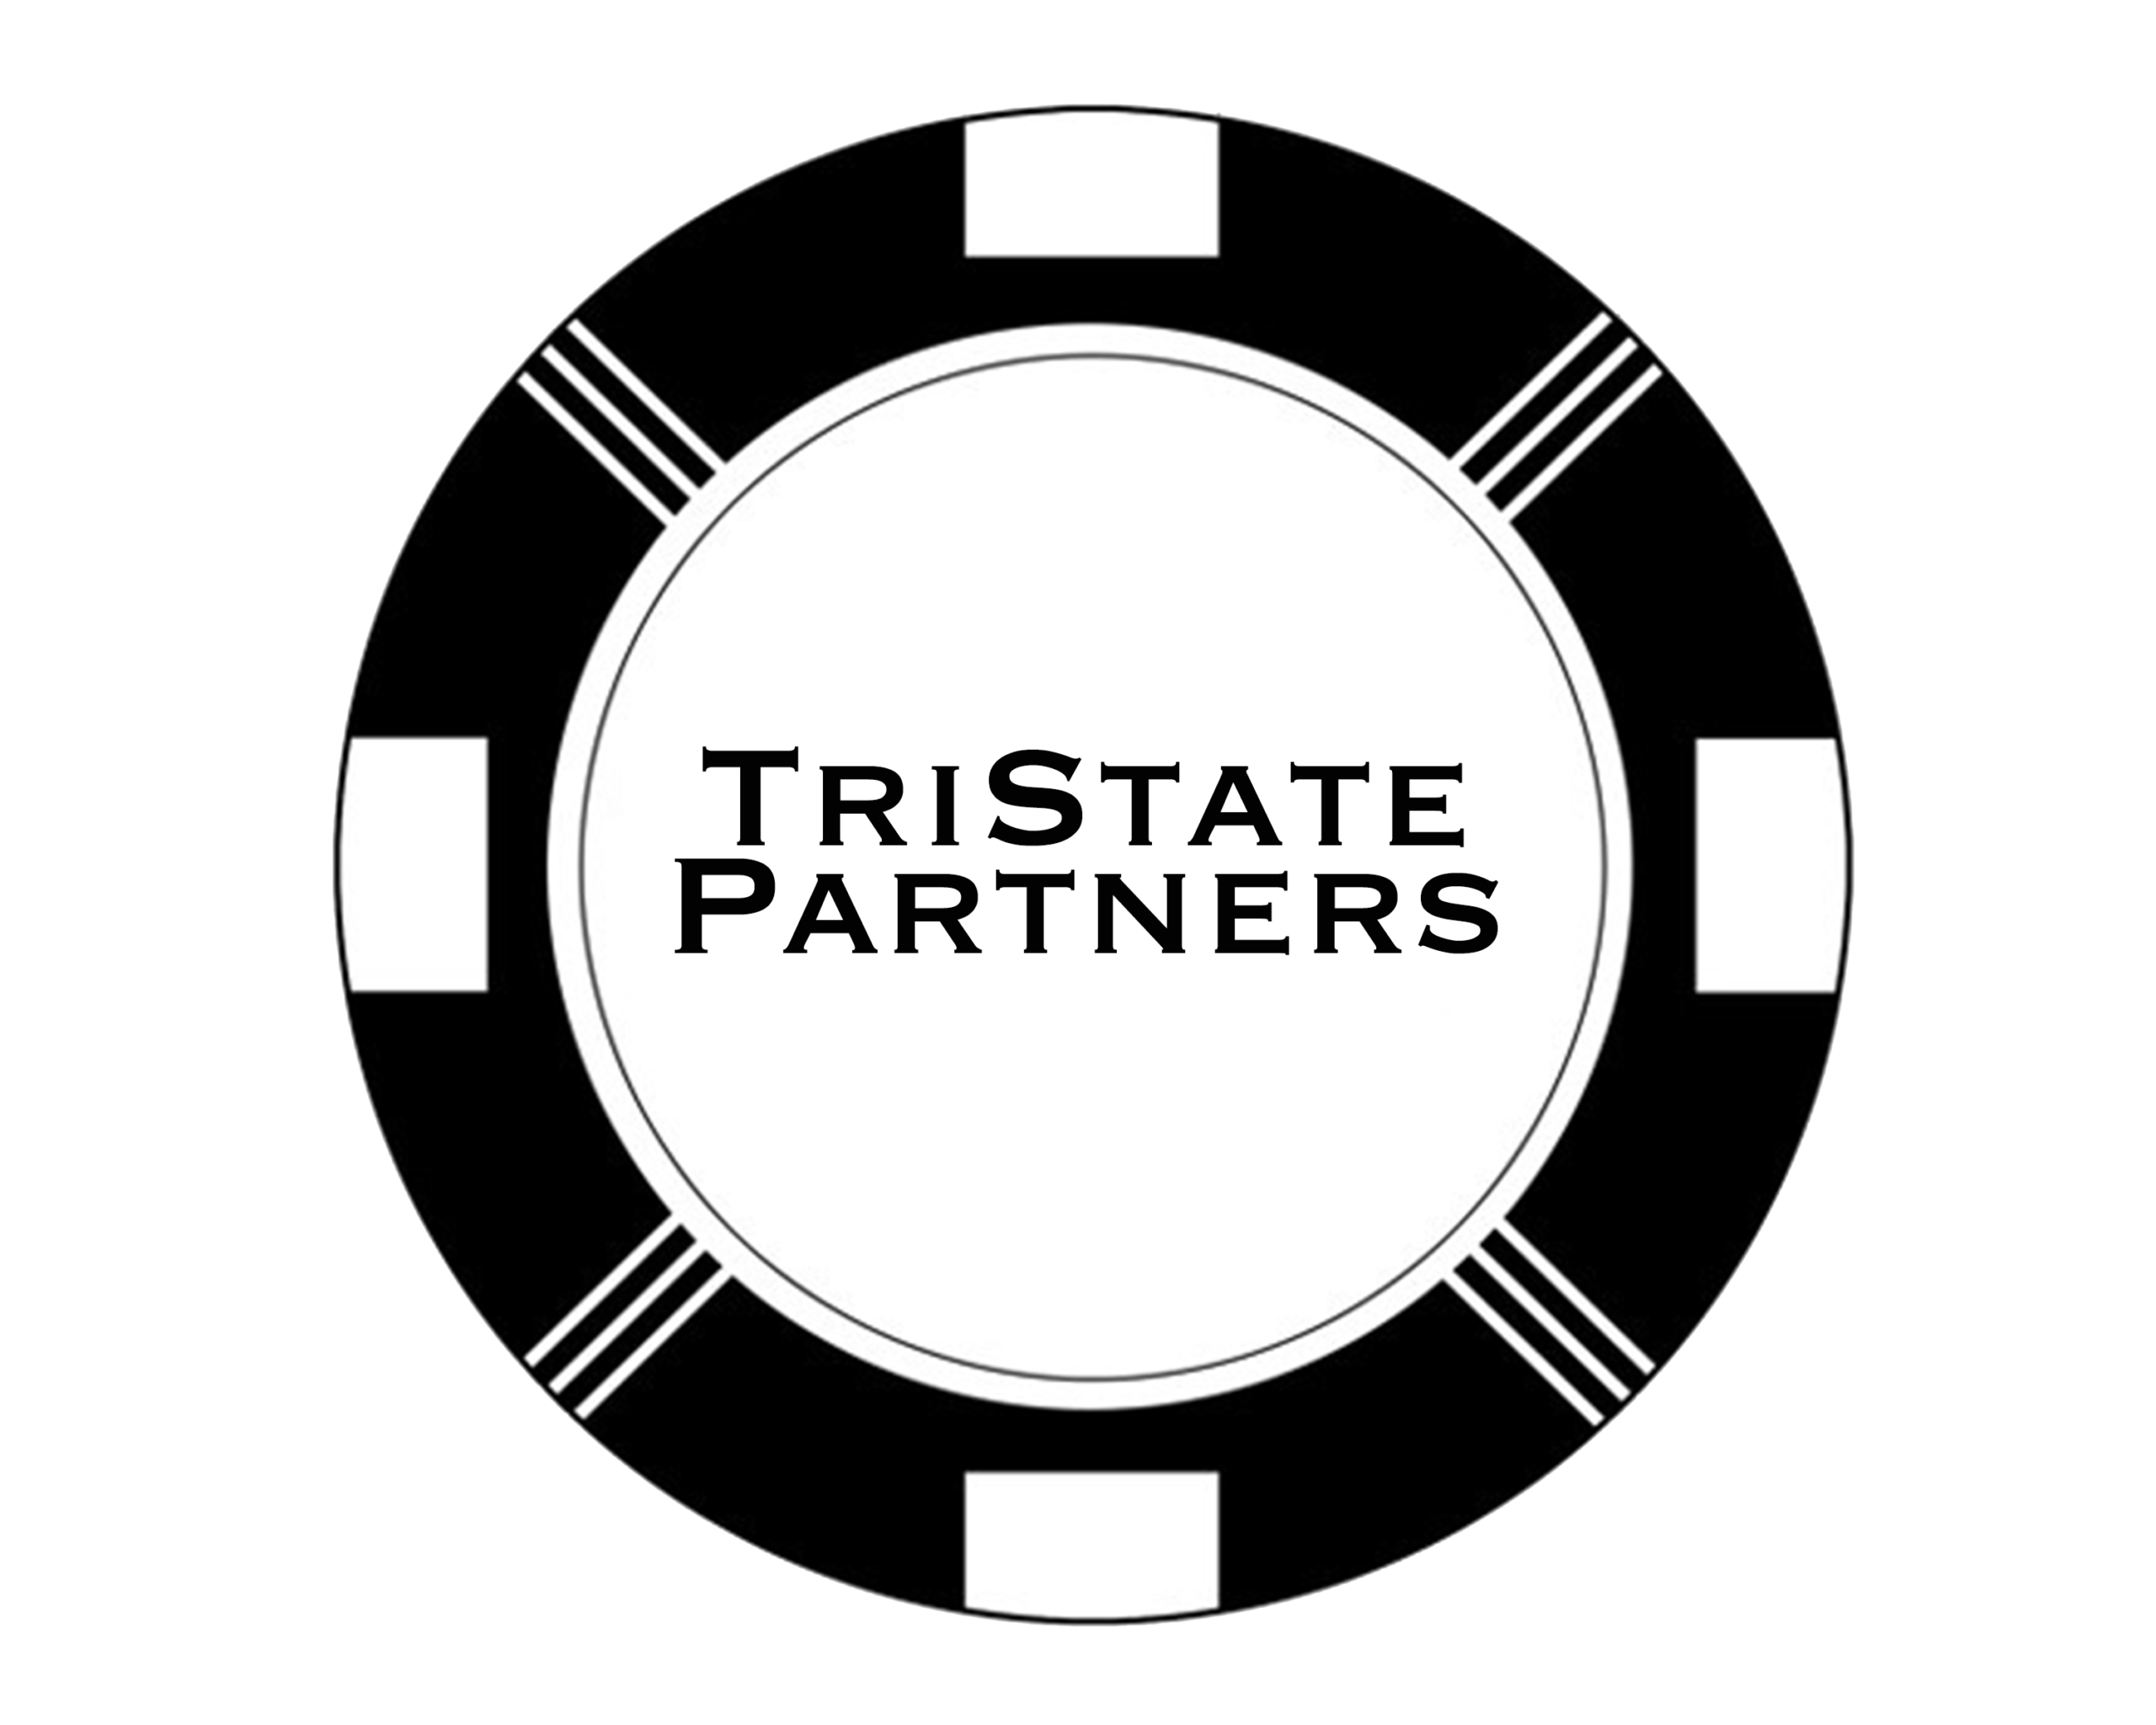 tristate partners